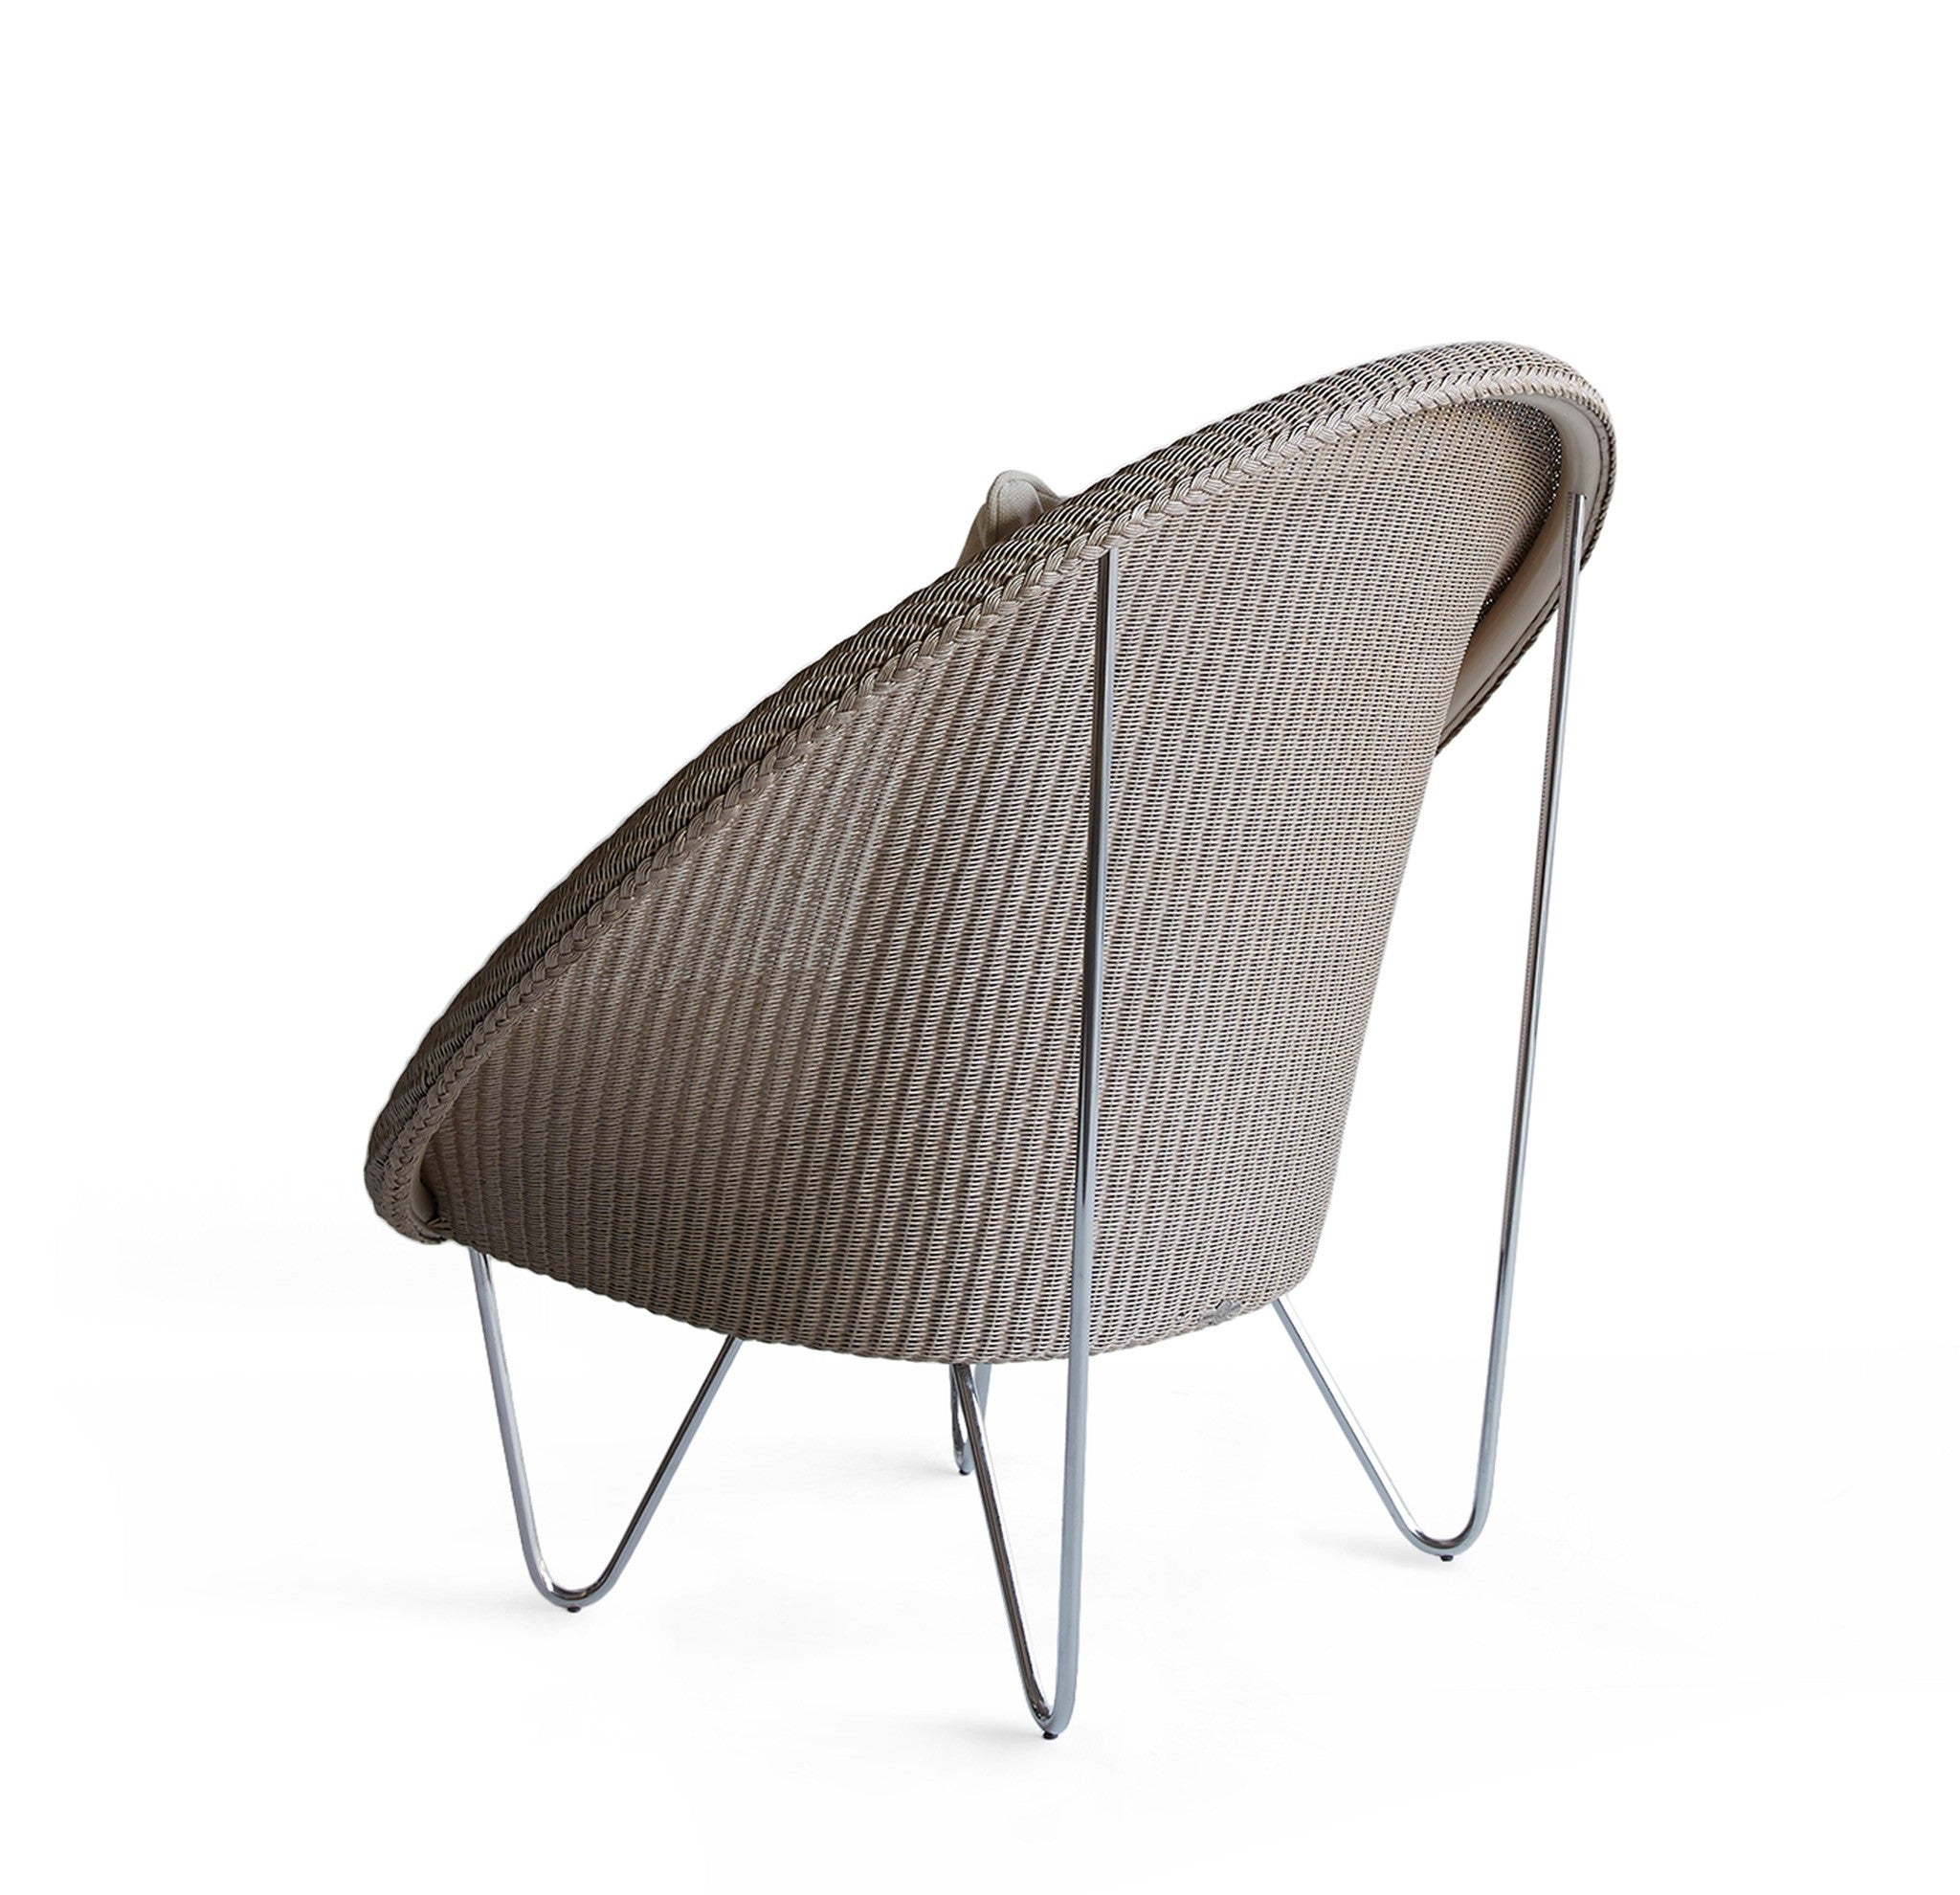 Joe Cocoon Chair | Nacre MW-Vincent Sheppard-Originals Furniture - 3